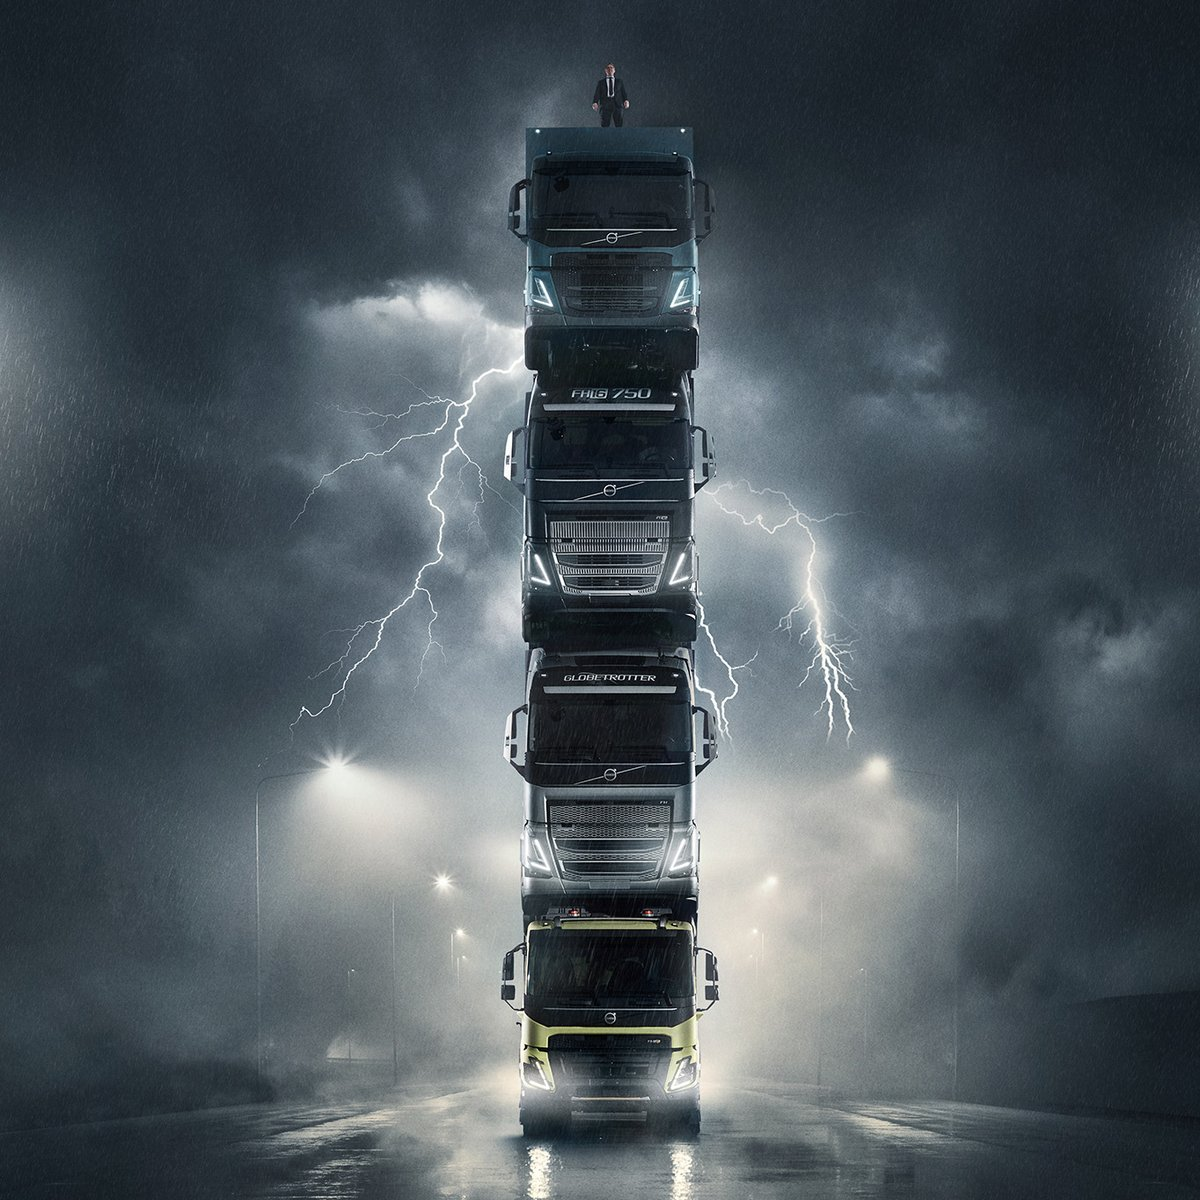 Volvo Trucks On Twitter This Time We Go Big We Re Launching Four New Trucks Let Us Present The New Volvo Fh Fh16 Fm And Fmx